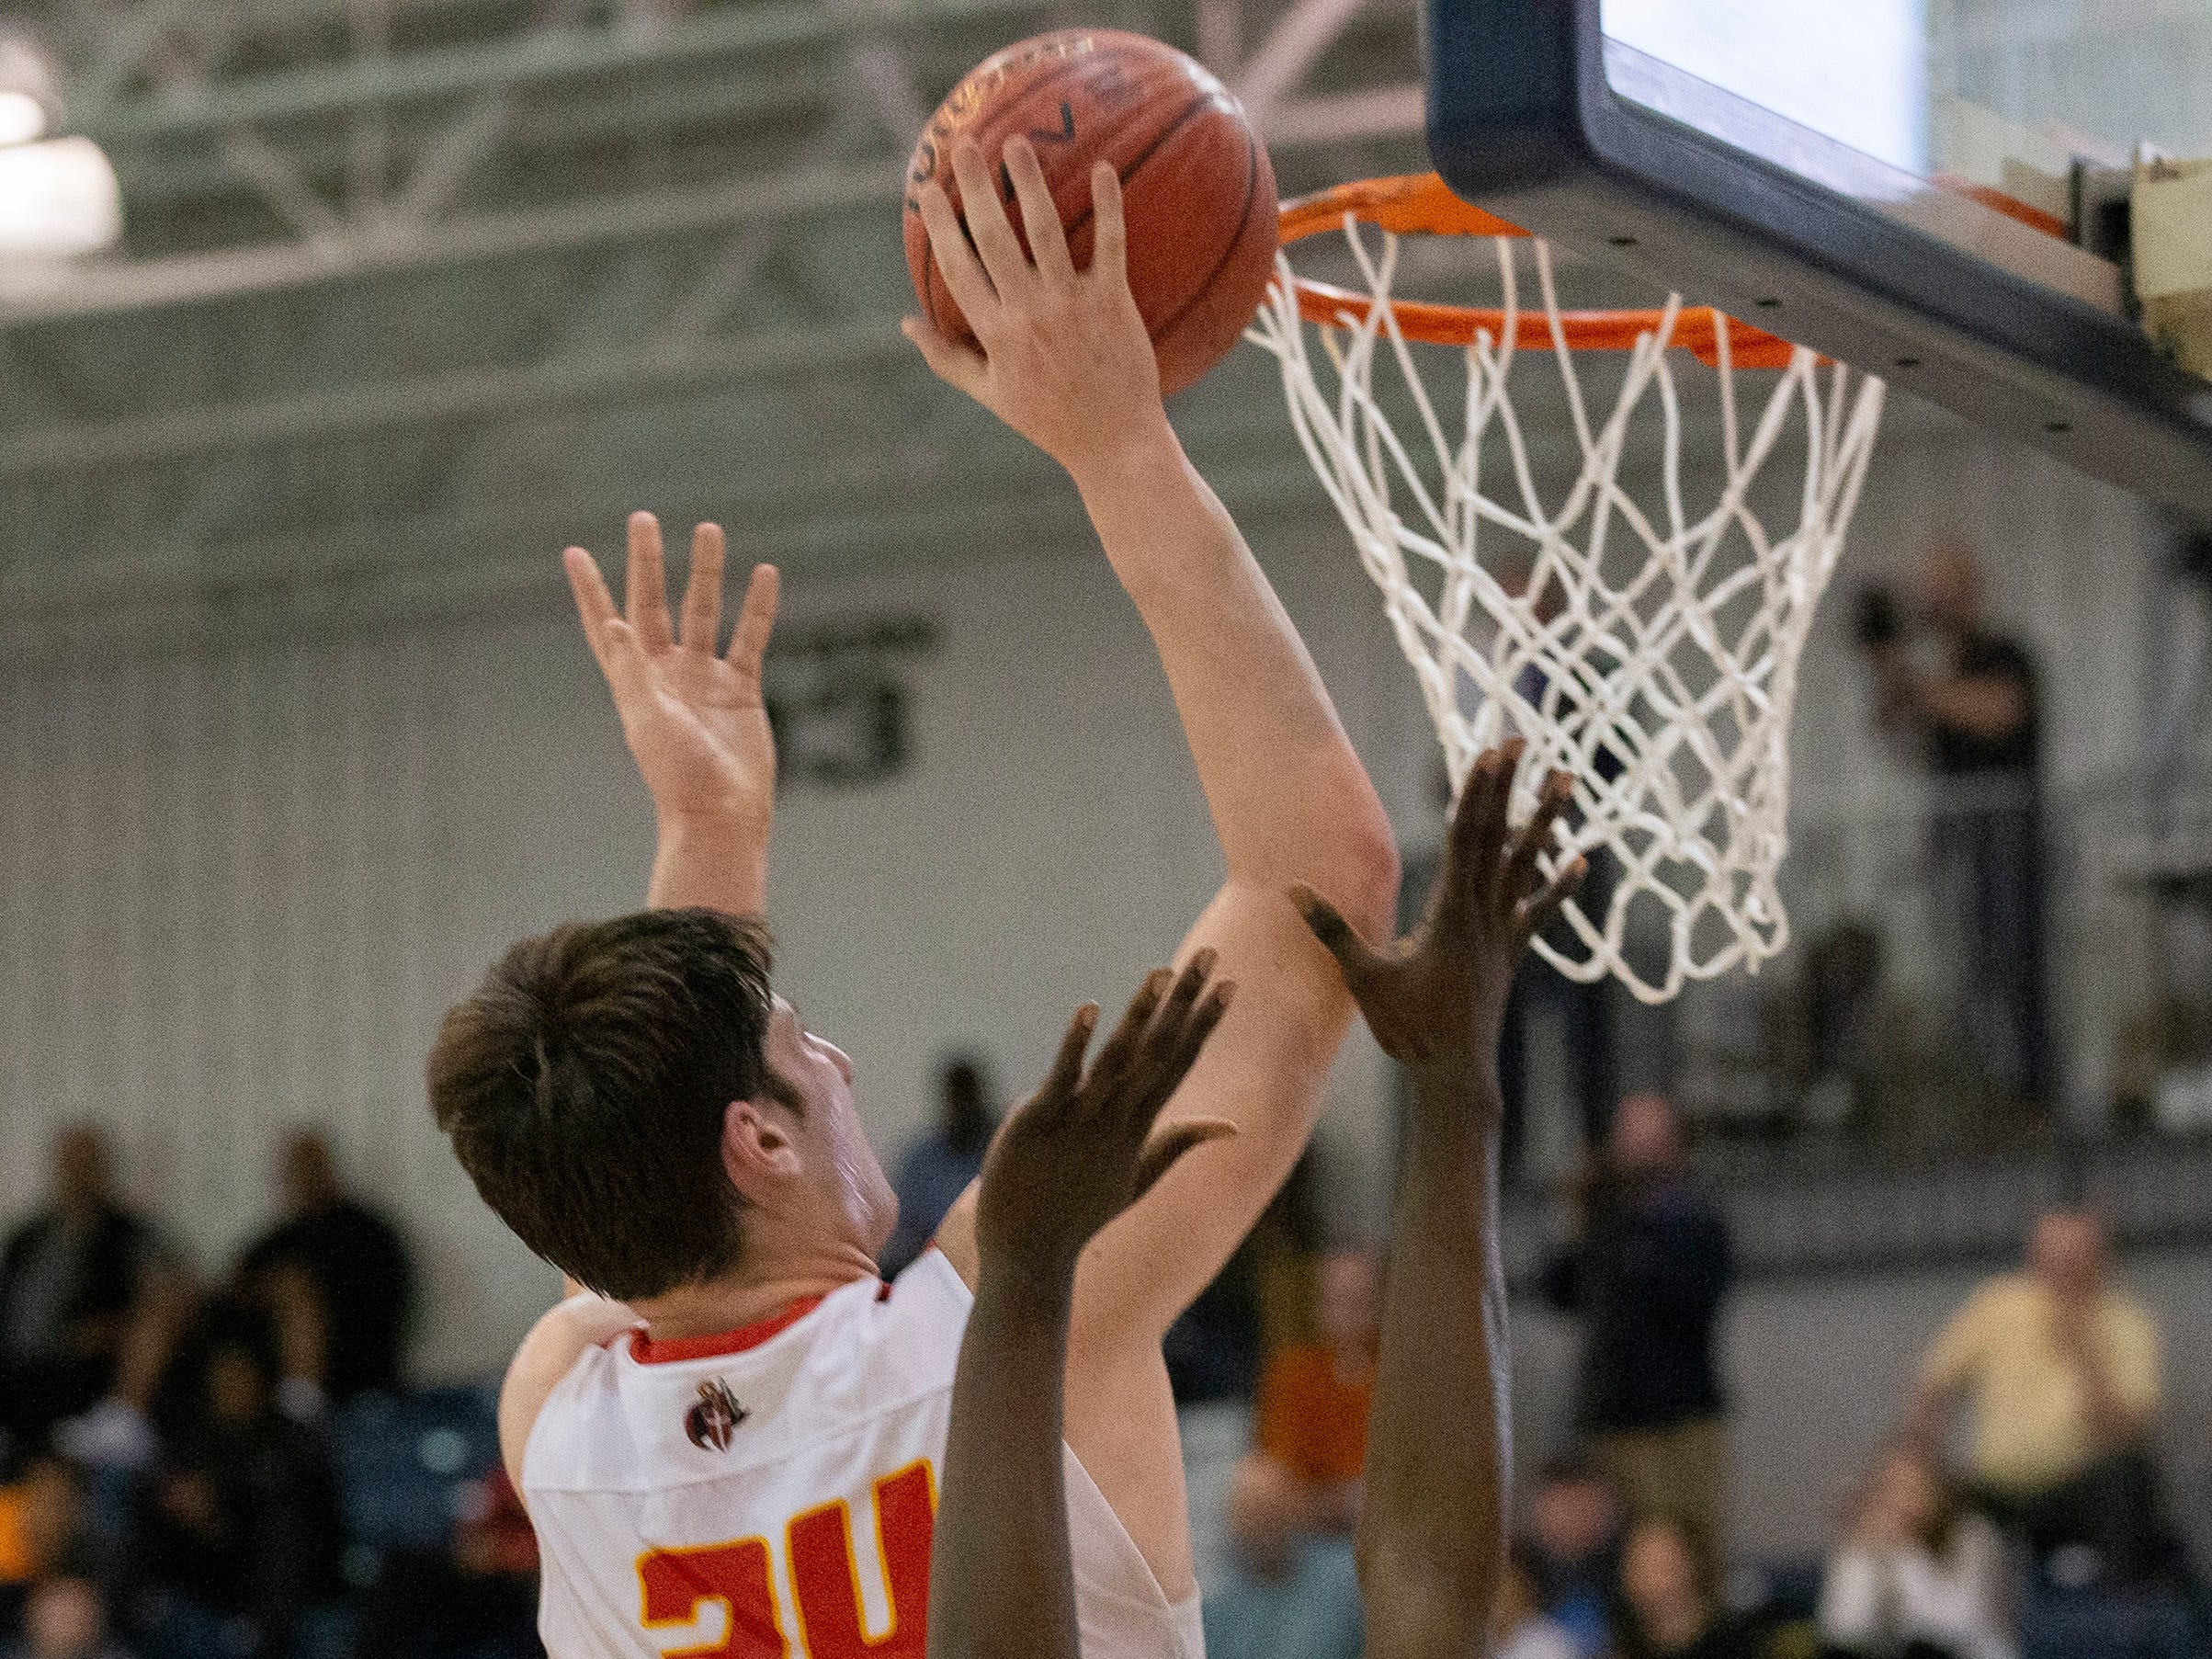 Matt Zona goes to the basket in first half action. Bergen Catholic vs. Newark East Side in the 5:30 p.m. semifinals of the 2019 NJSIAA Tournament of Champions in Toms River on March 15, 2019.